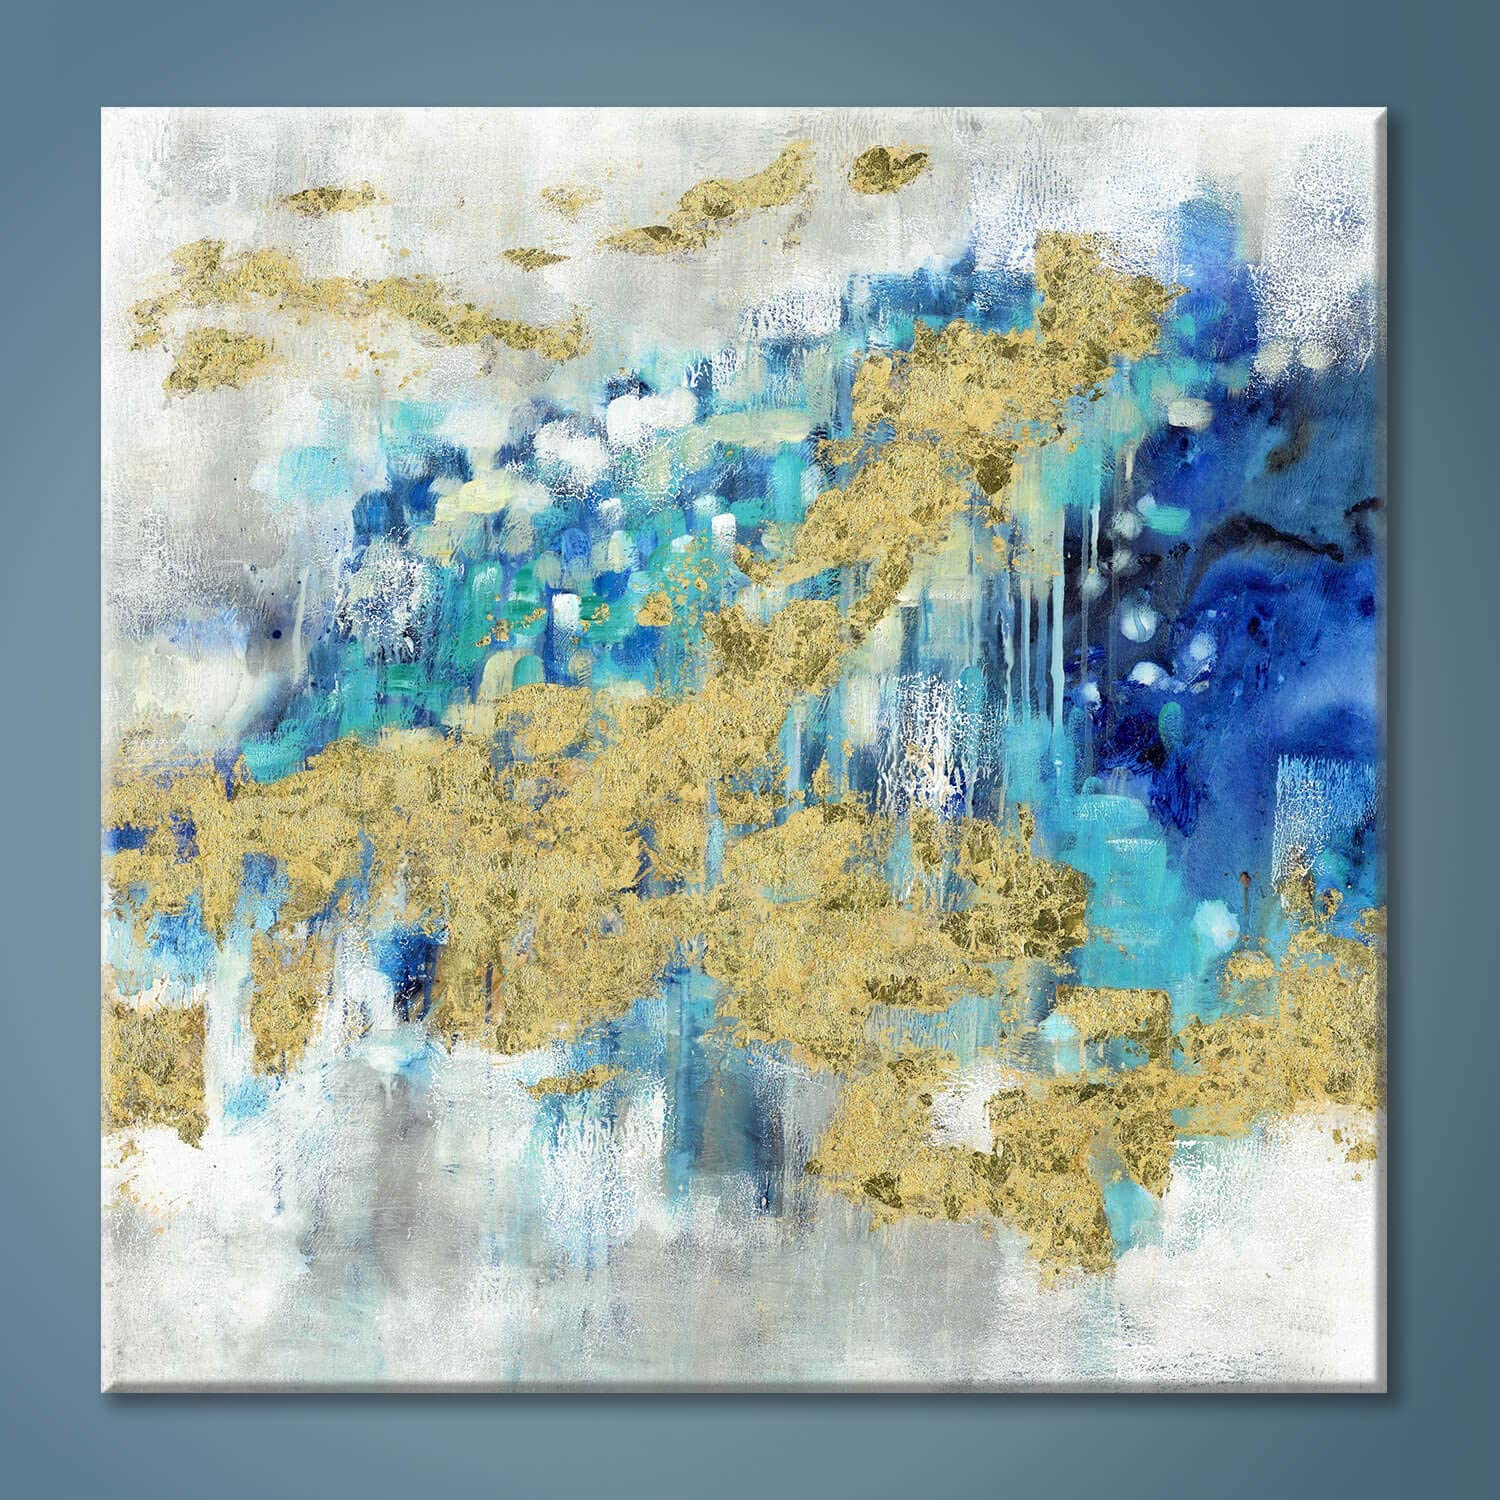 Abstract Modern Canvas Wall Art Painting: Blue Artwork Gold Foil Painted Picture White Grey Background Print for Office Home Living Room Wall Decor